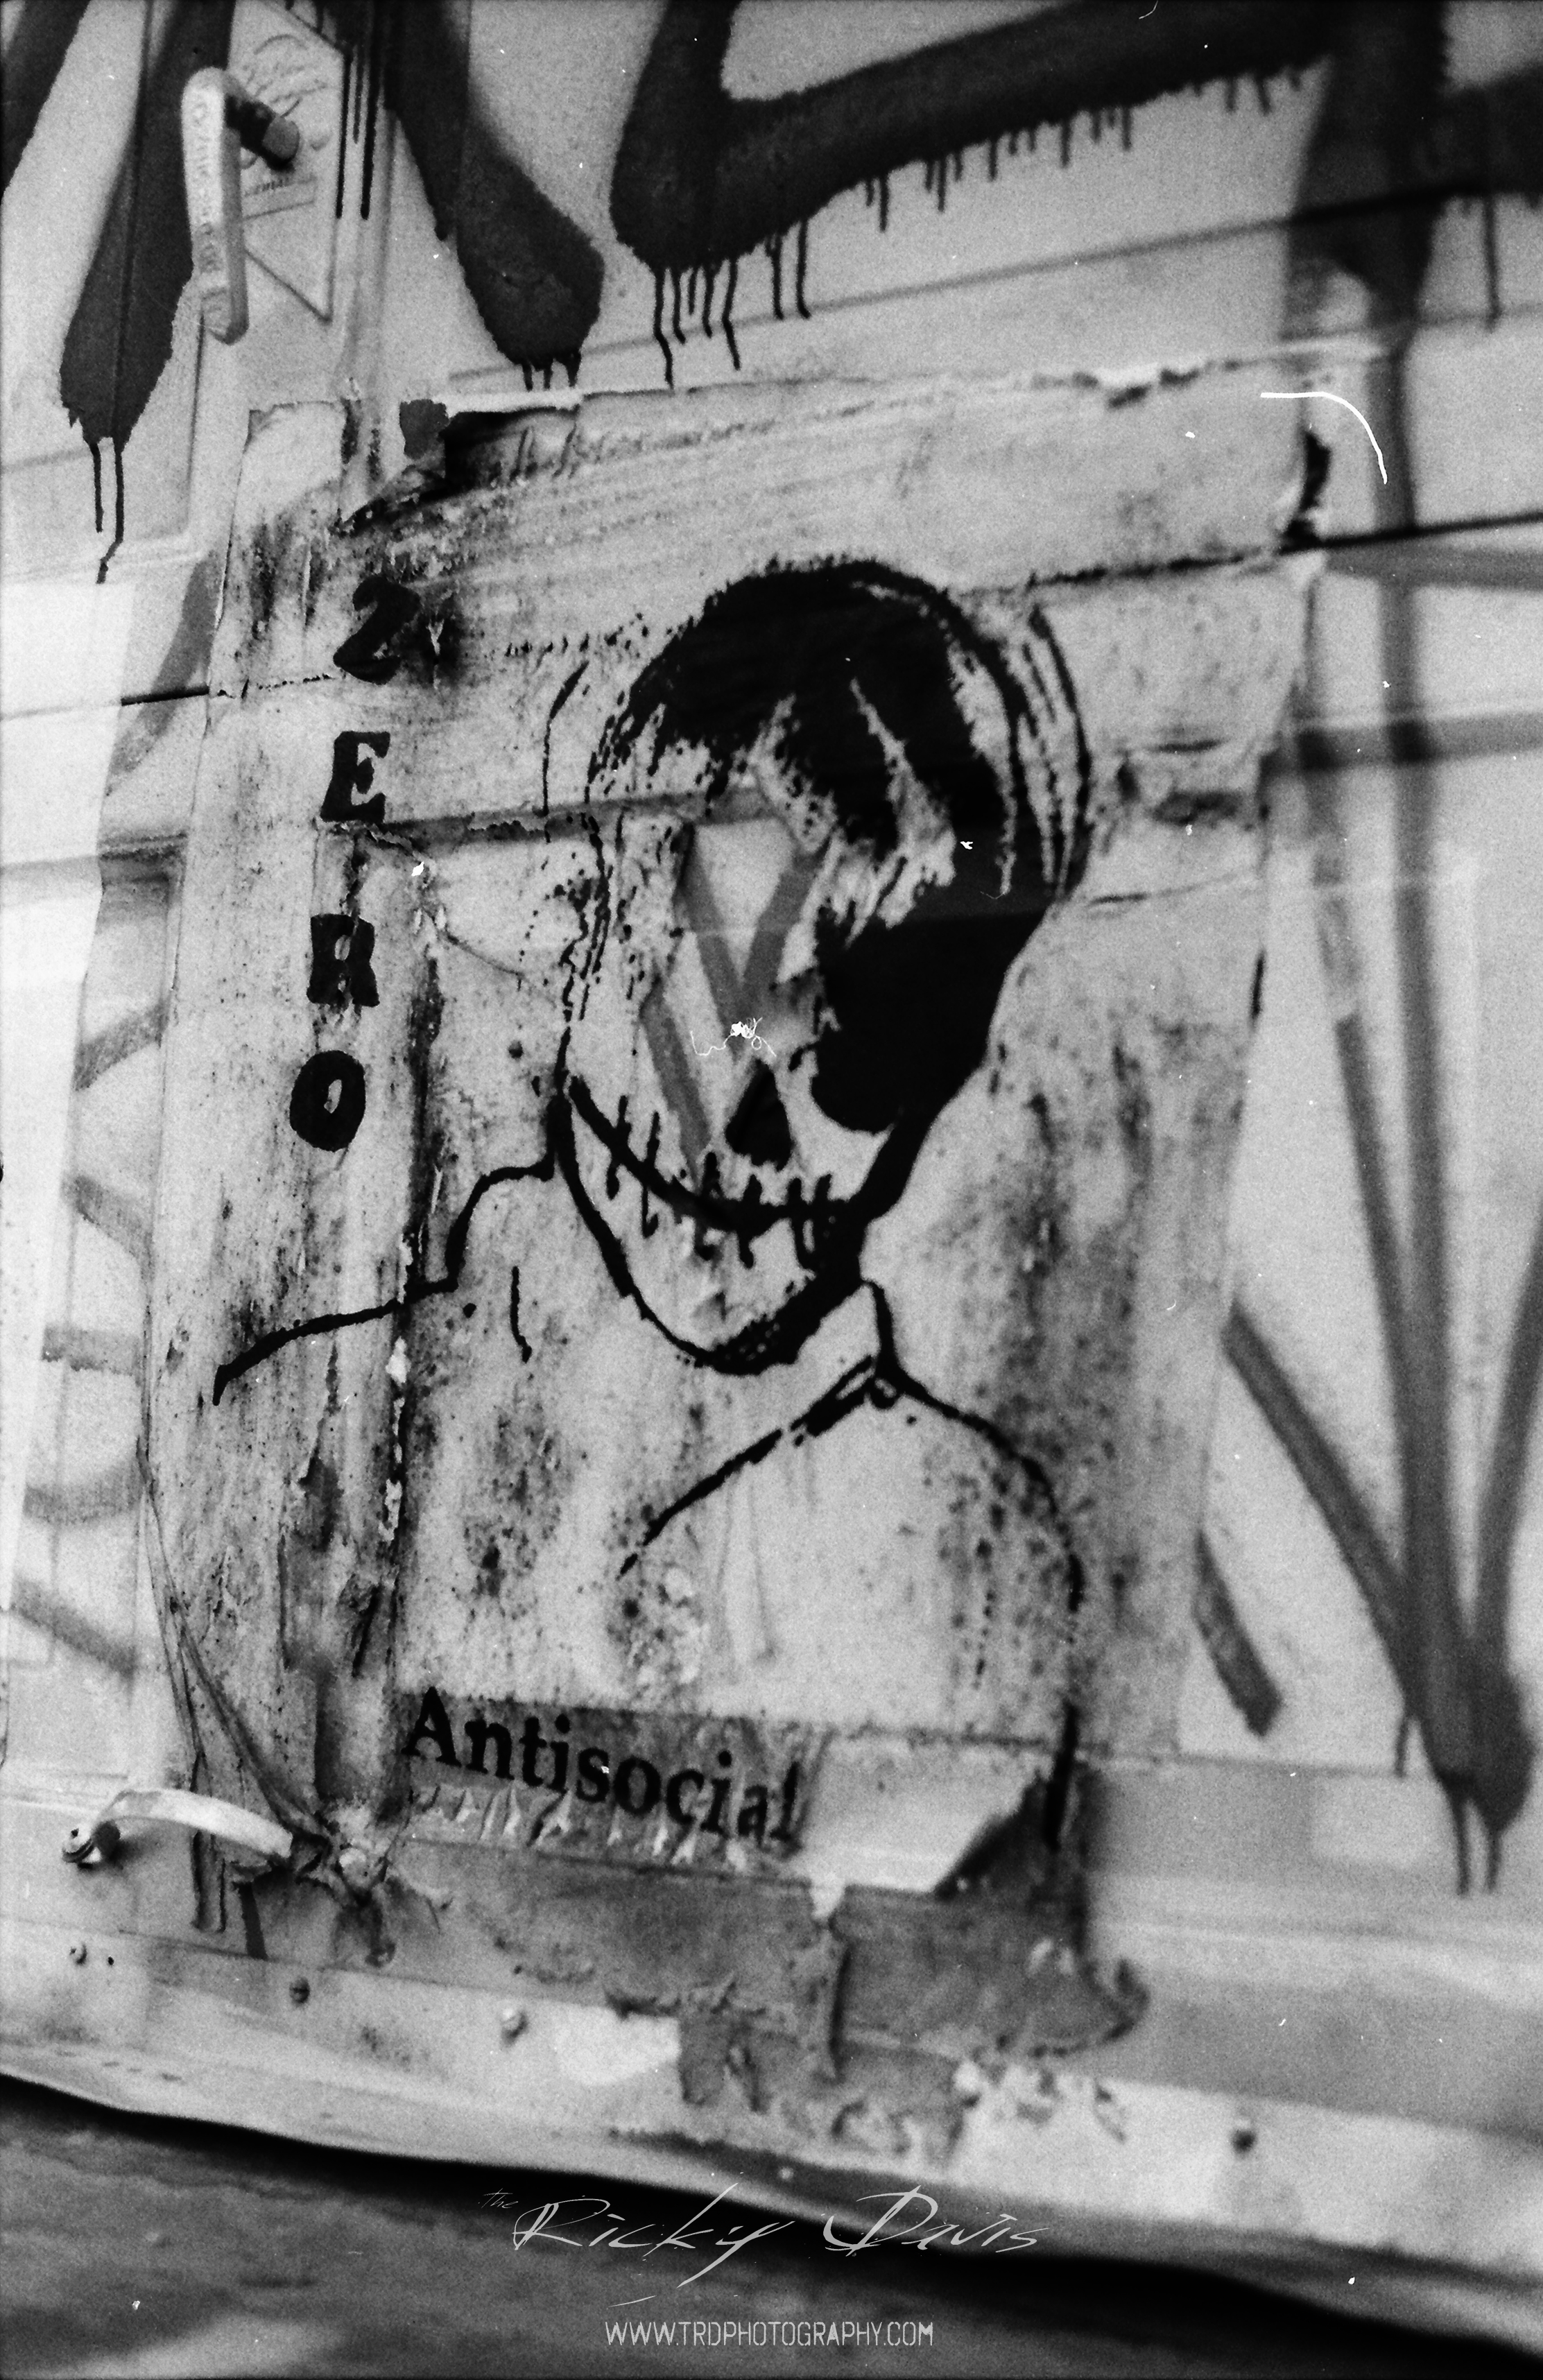 Anti-Social - Street Art - Chattanooga, TN - Film - Expired Neopan SS - Camera - Minolta XG 1 - Photographer Ricky Davis